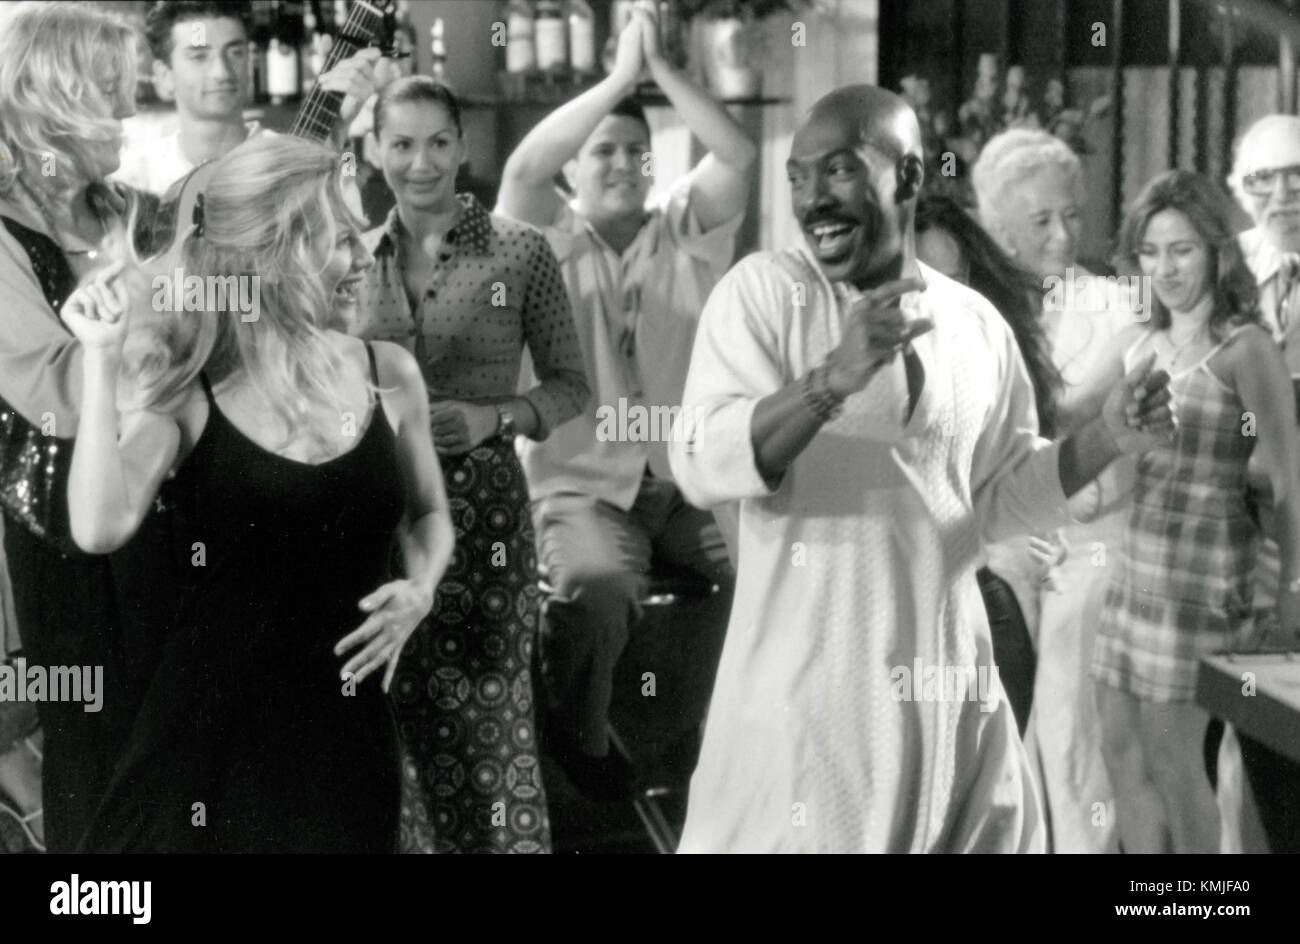 Actors Eddie Murphy and Kelly Preston in the movie Holy Man, 1998 - Stock Image